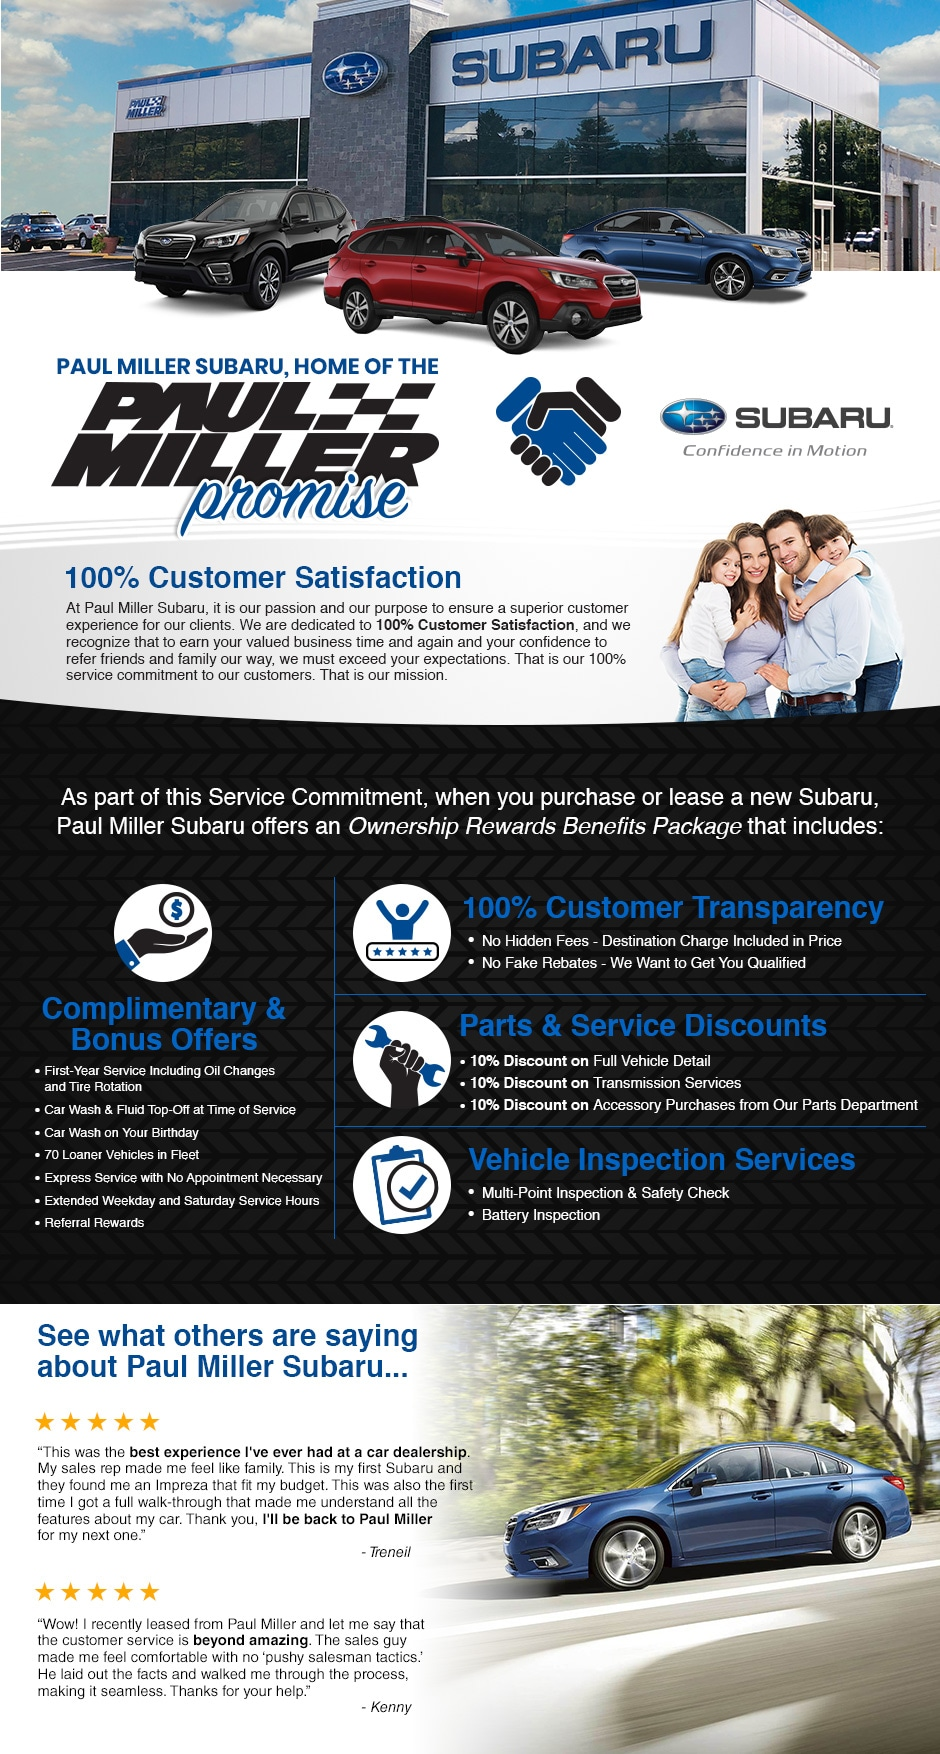 Subaru Dealer Parsippany Nj Paul Miller Subaru